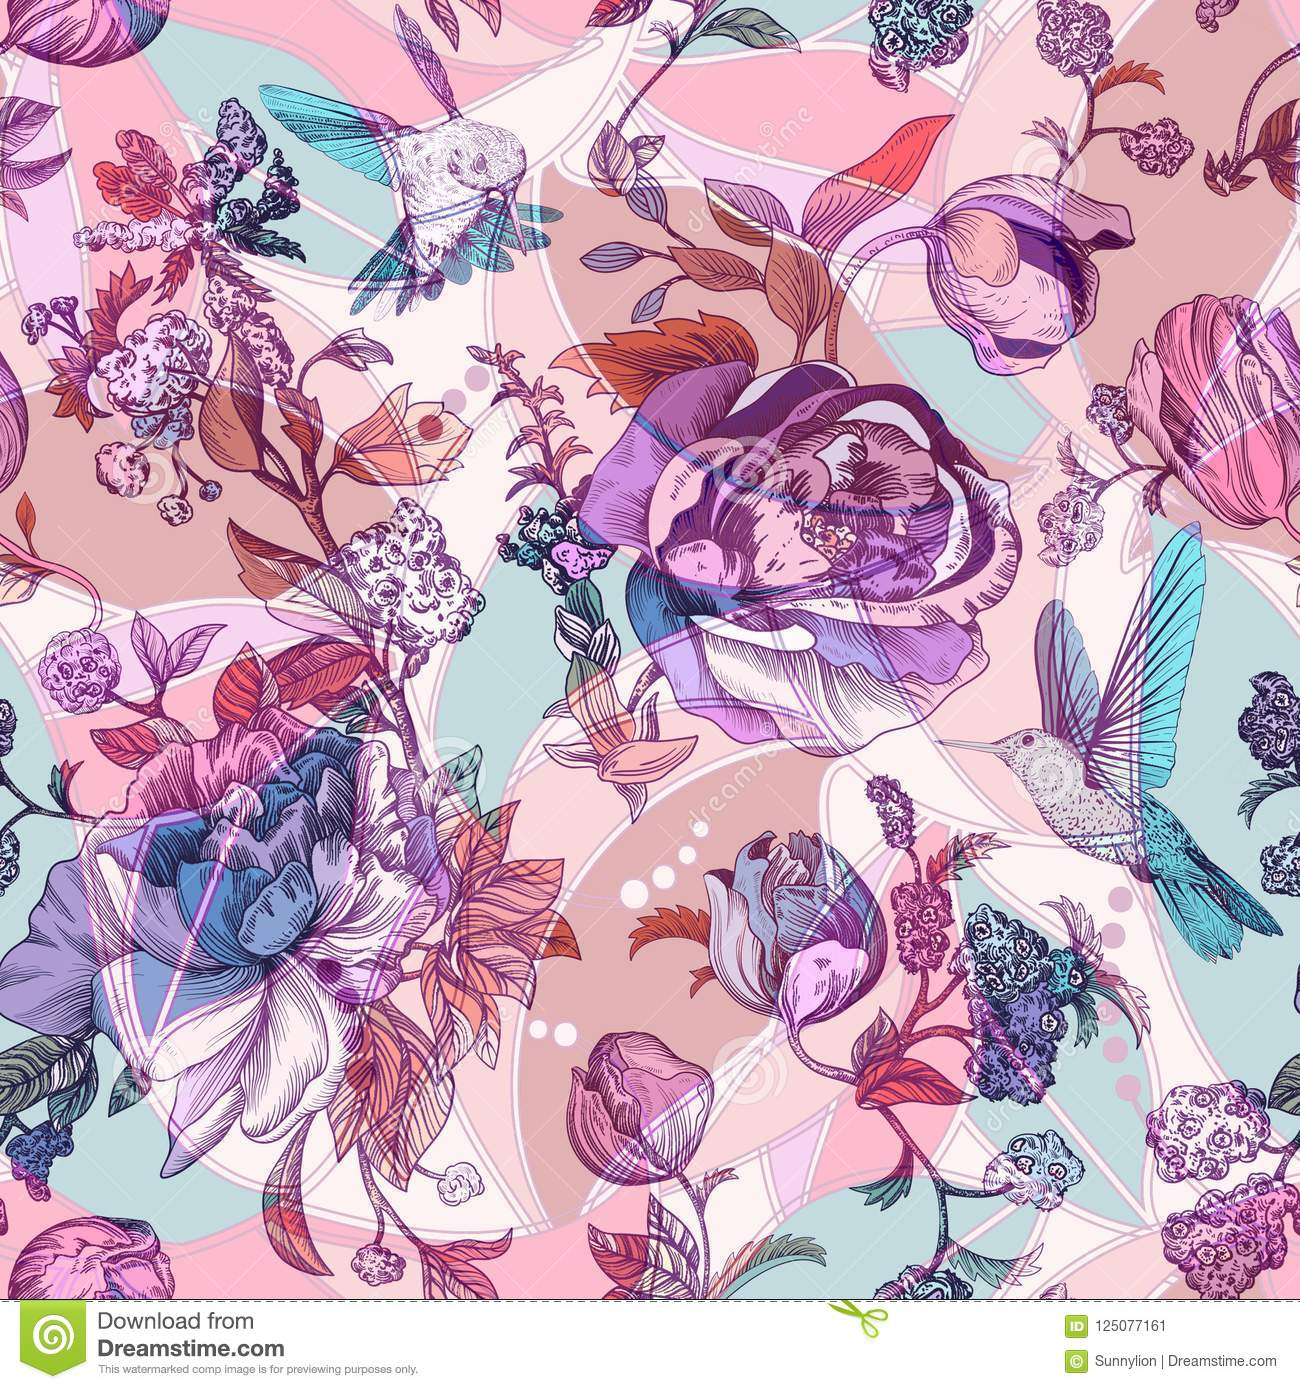 Vintage Seamless Pattern With Roses And Peonies Retro Floral